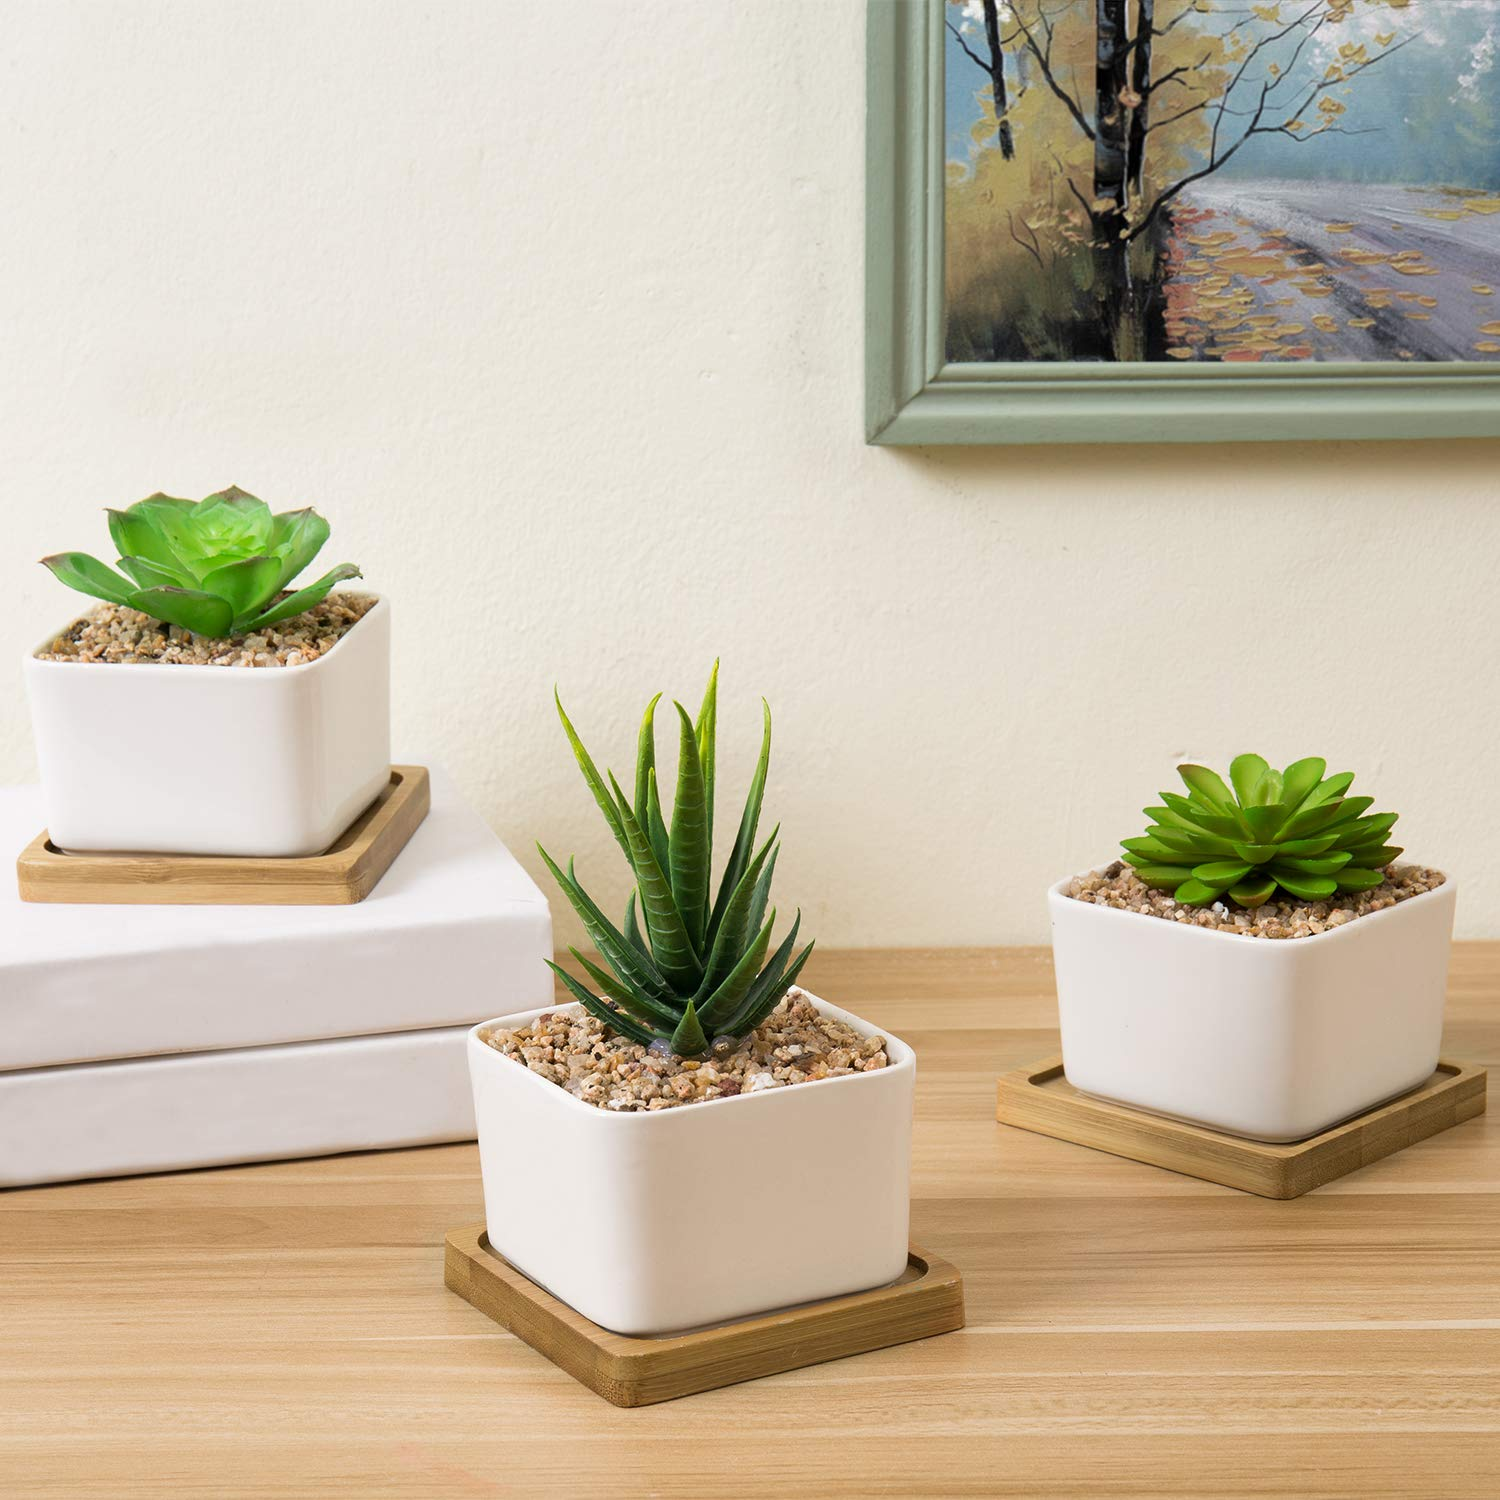 MyGift Artificial Succulent Plants in Square Ceramic Planters with Bamboo Trays, Set of 3